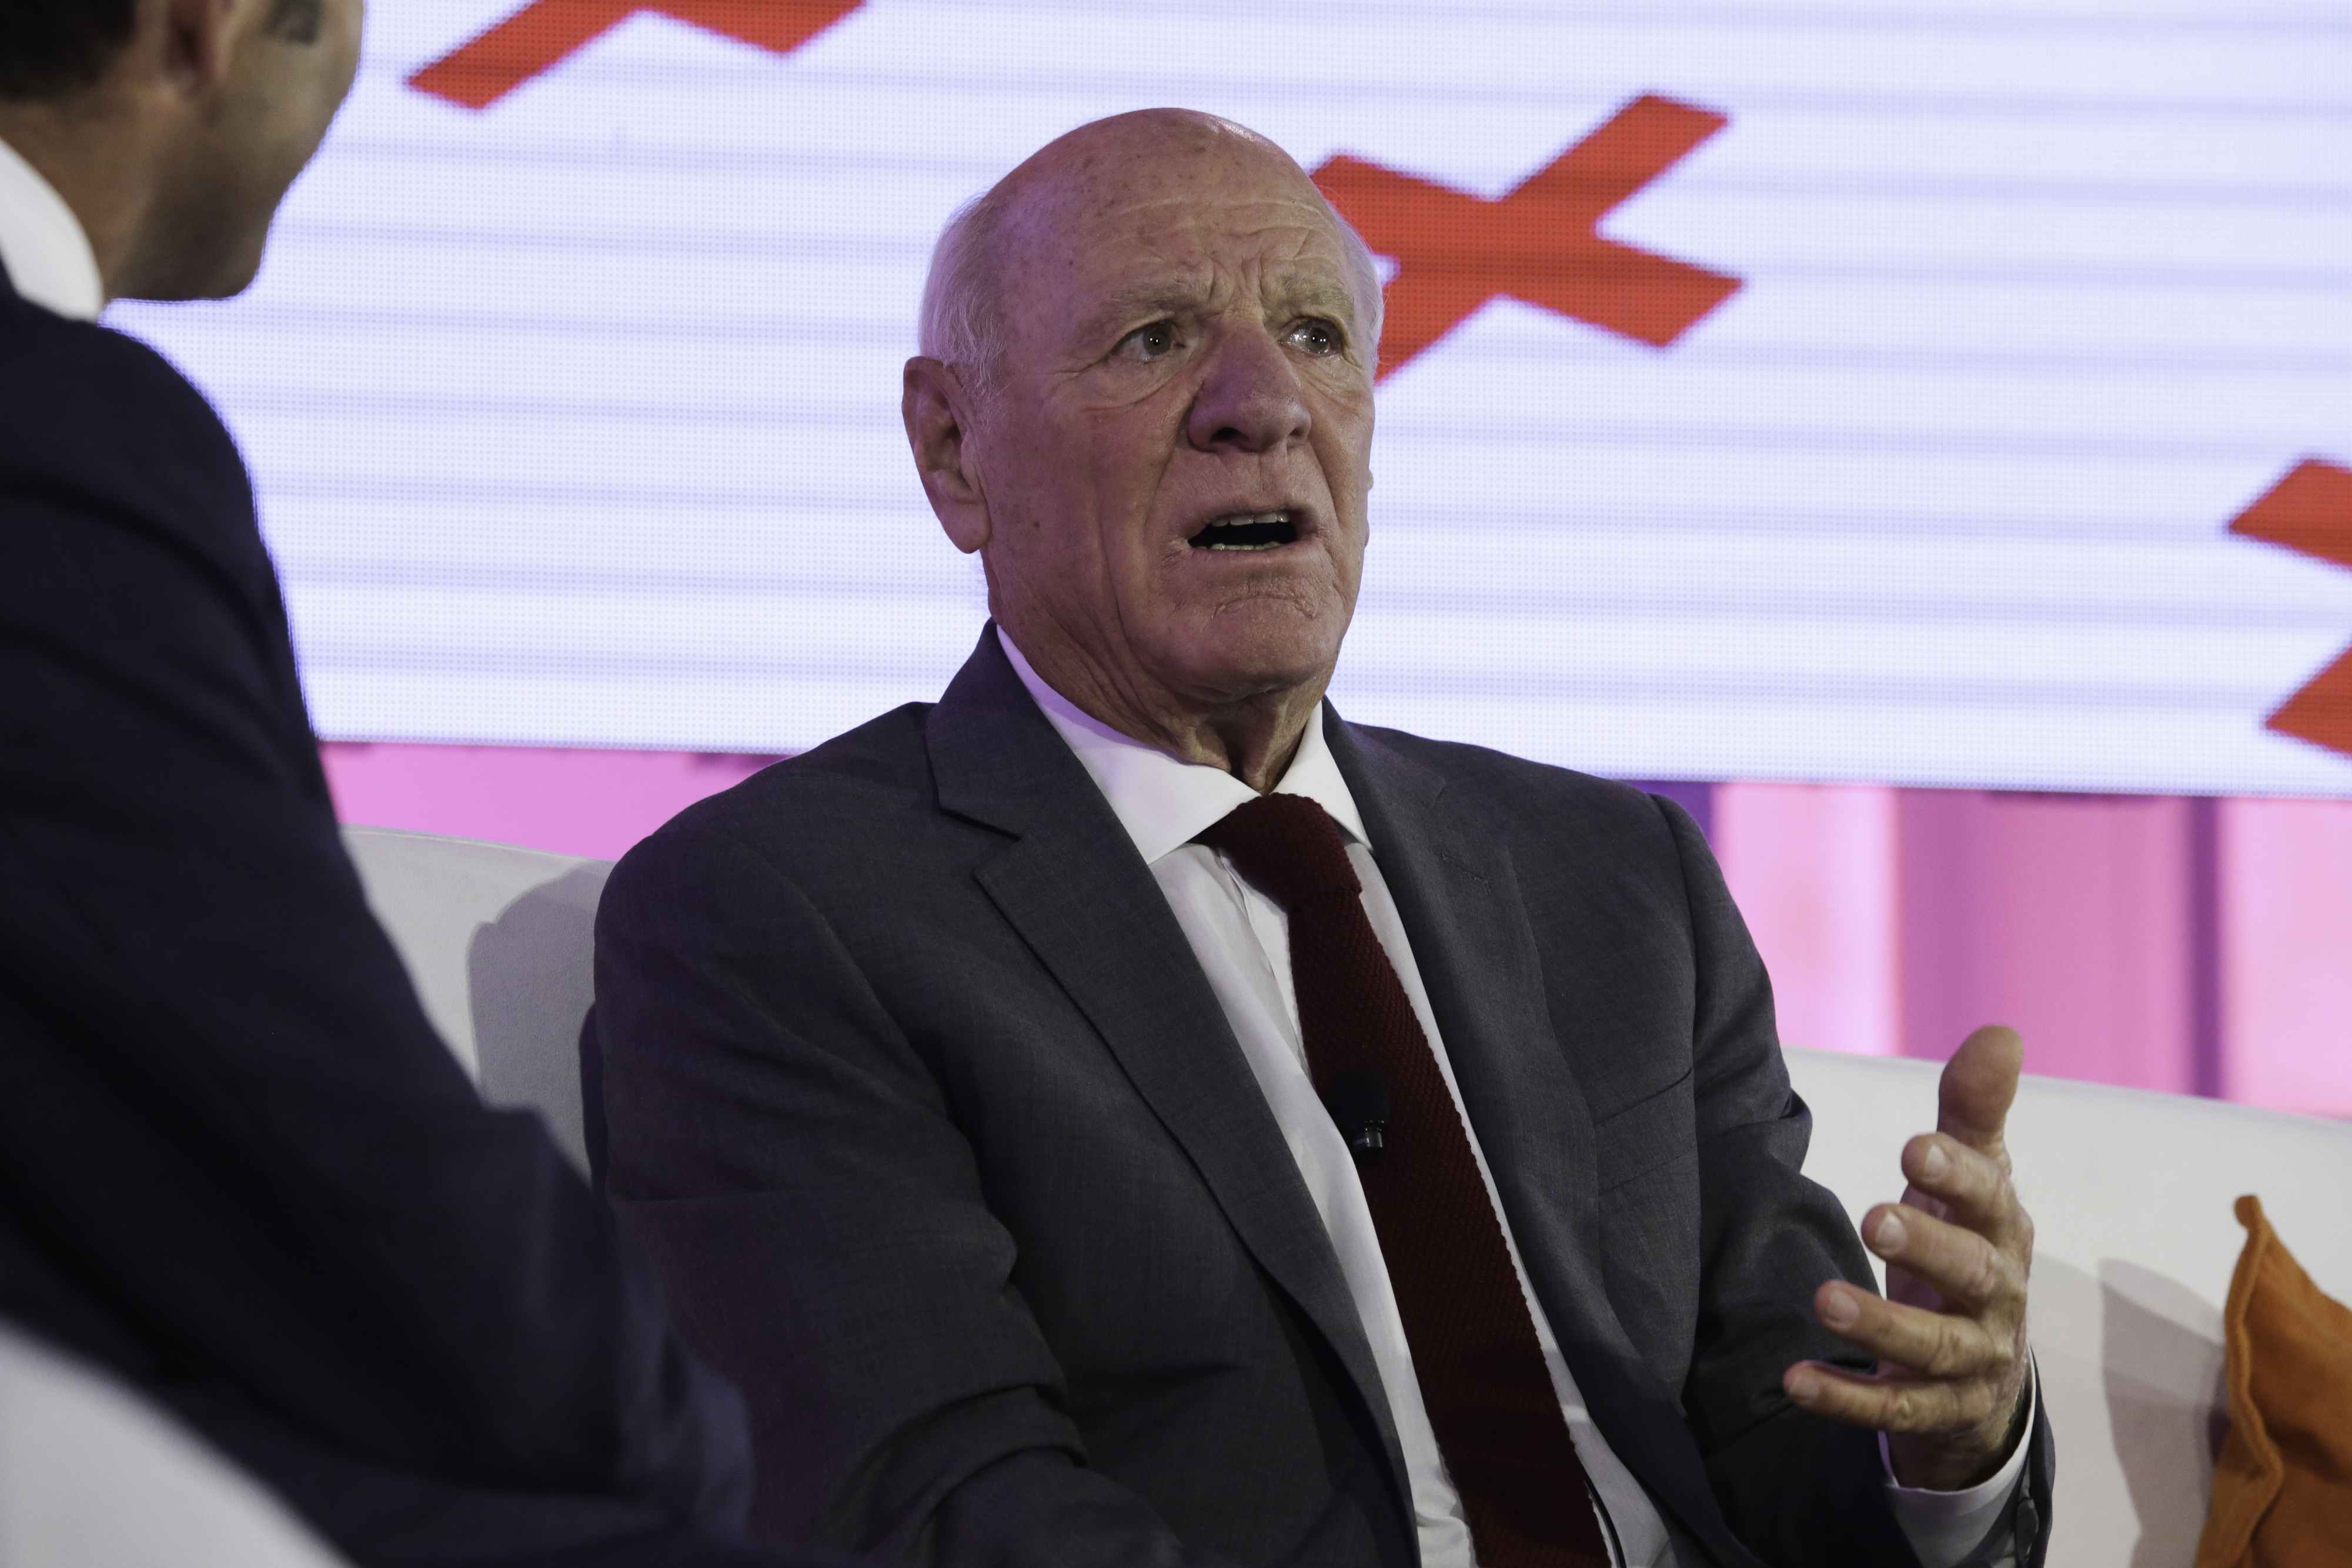 Barry Diller, chairman and senior executive of IAC/InterActiveCorp,  speaks at the Bloomberg Markets Most Influential Summit 2015 in New York, U.S., on Tuesday, Oct. 6, 2015. The summit brings together the bankers, policymakers, money managers and big thinkers who matter most for a day of discussion about the macroeconomic trends and global forces shaping investment strategy. Photographer: Chris Goodney/Bloomberg *** Local Caption ***Barry Diller